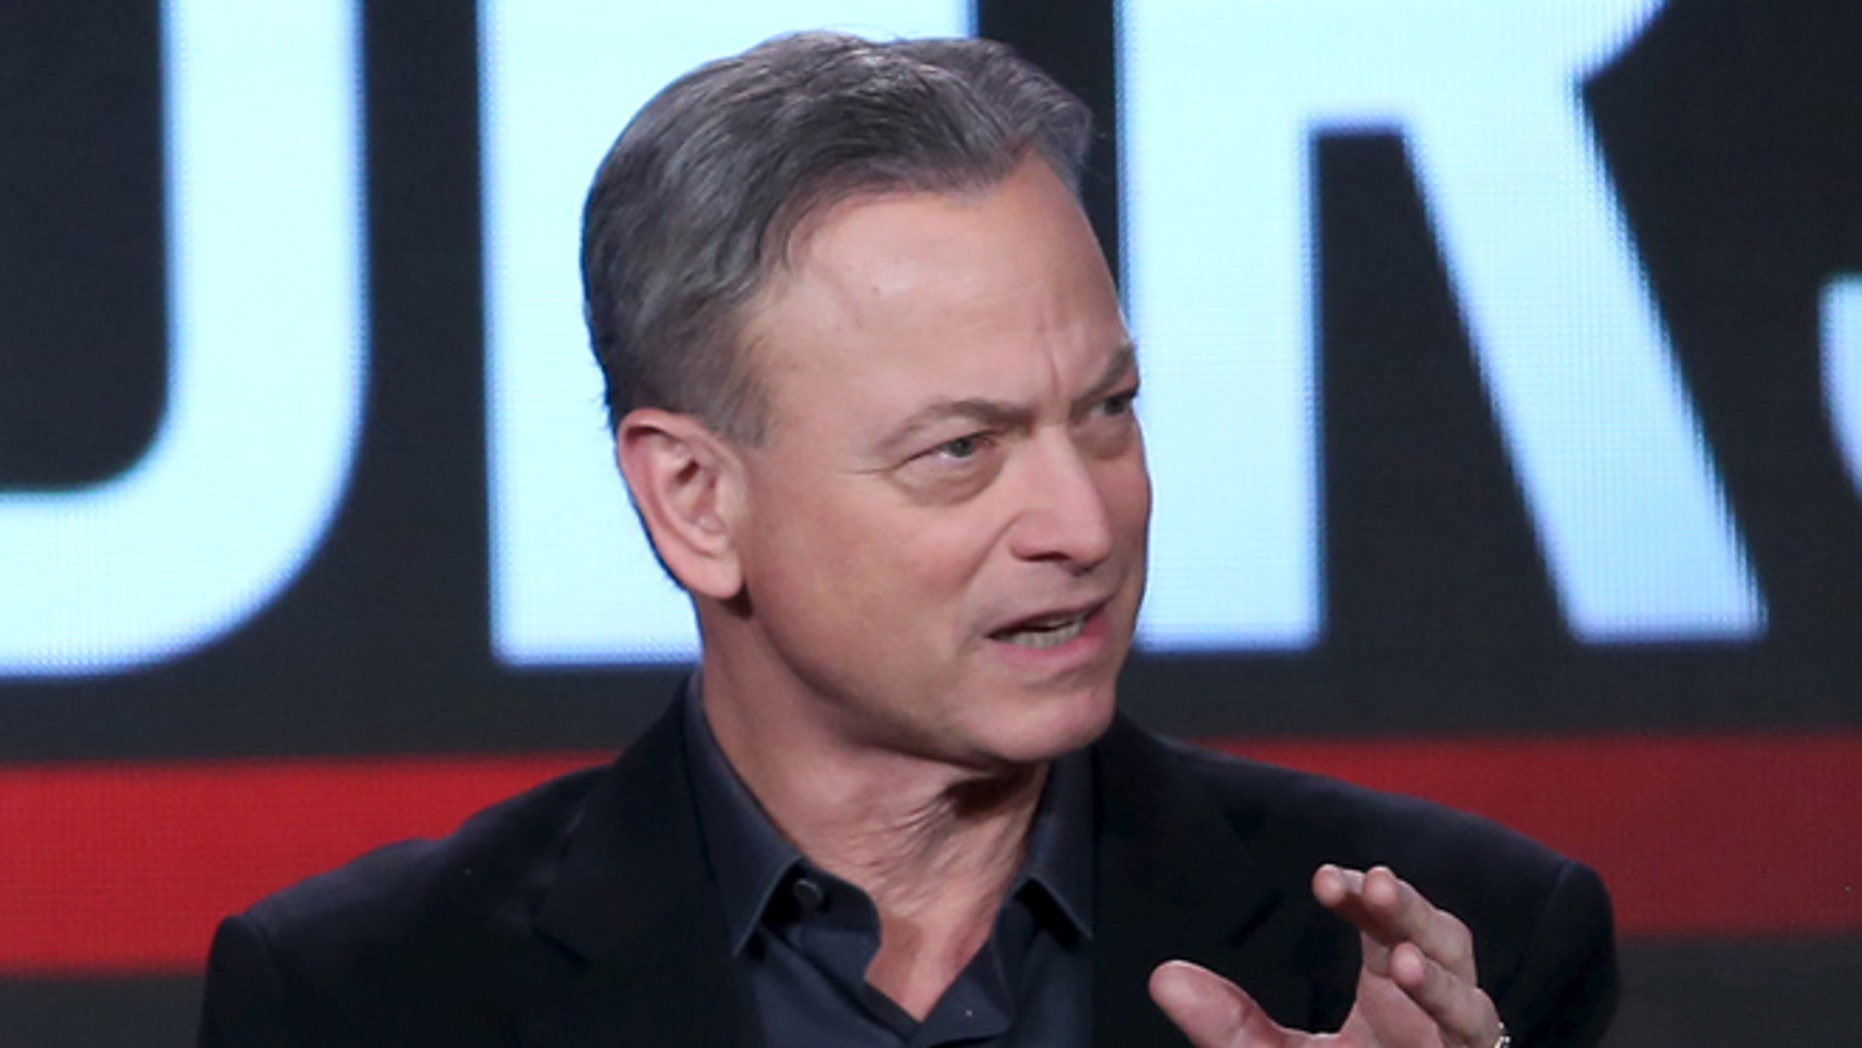 Gary Sinise attended the dedication of a 'smart home' for a veteran in Maryland.